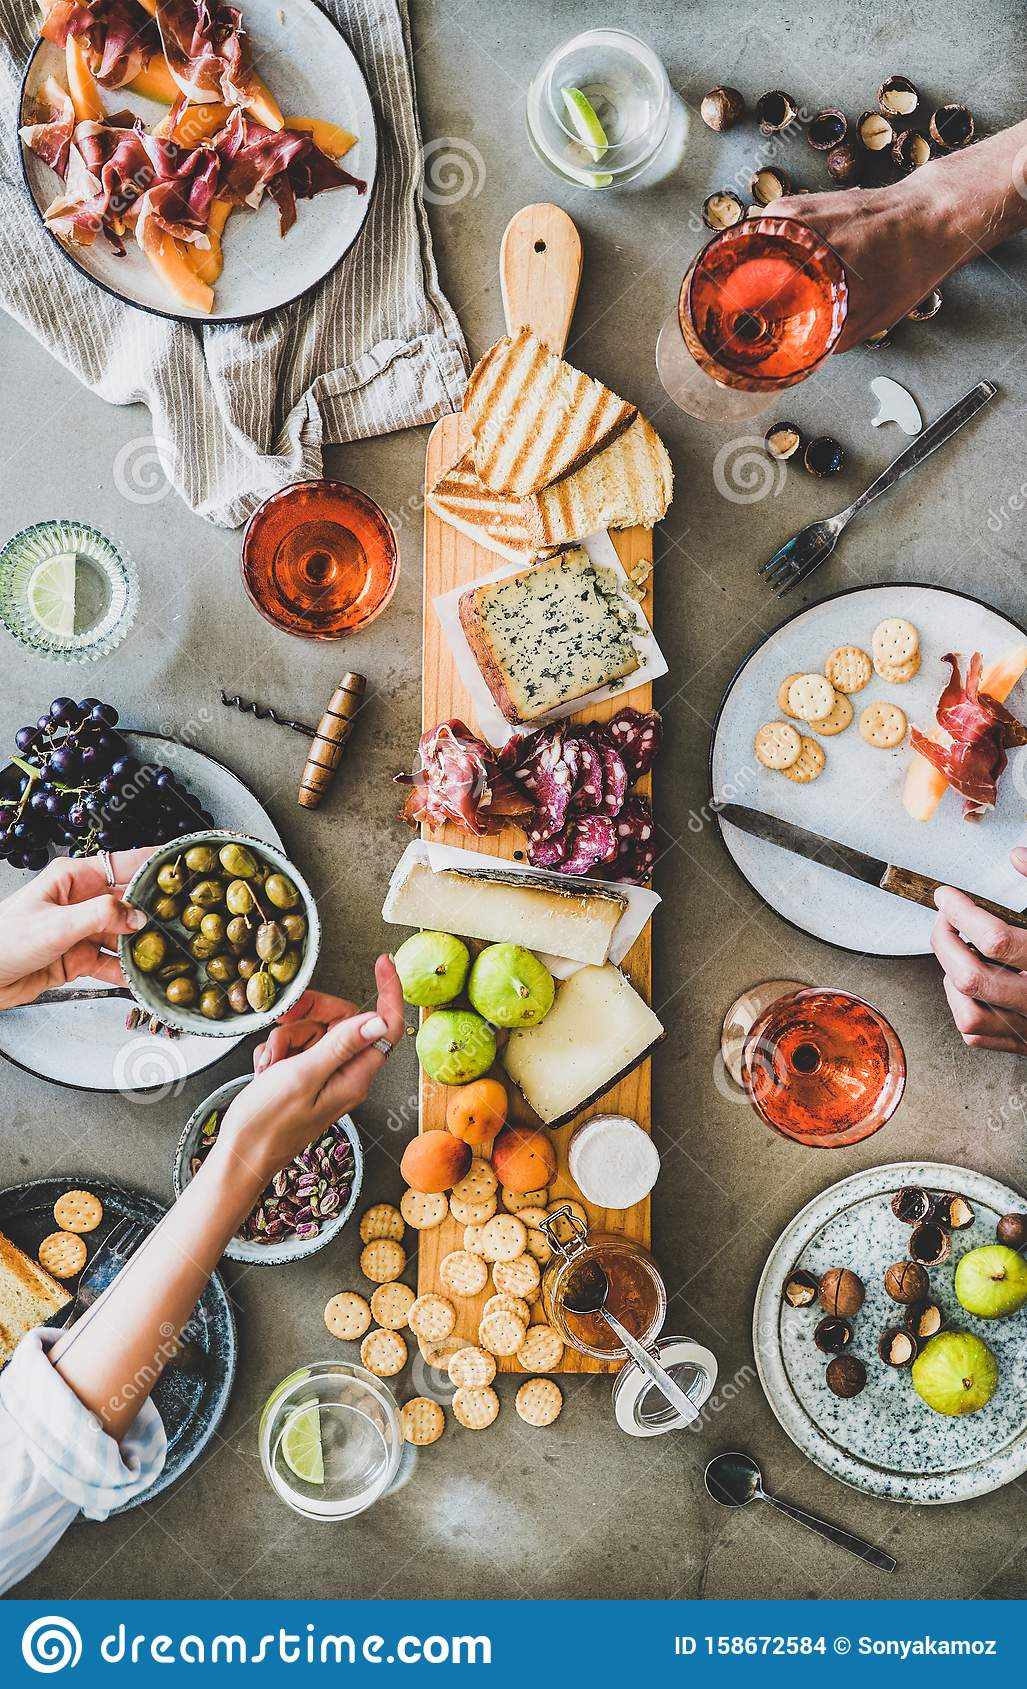 Seasonal Picnic With Rose Wine Cheese Charcuterie And Appetizers Stock Photo Image Of Bottle Meal 158672584